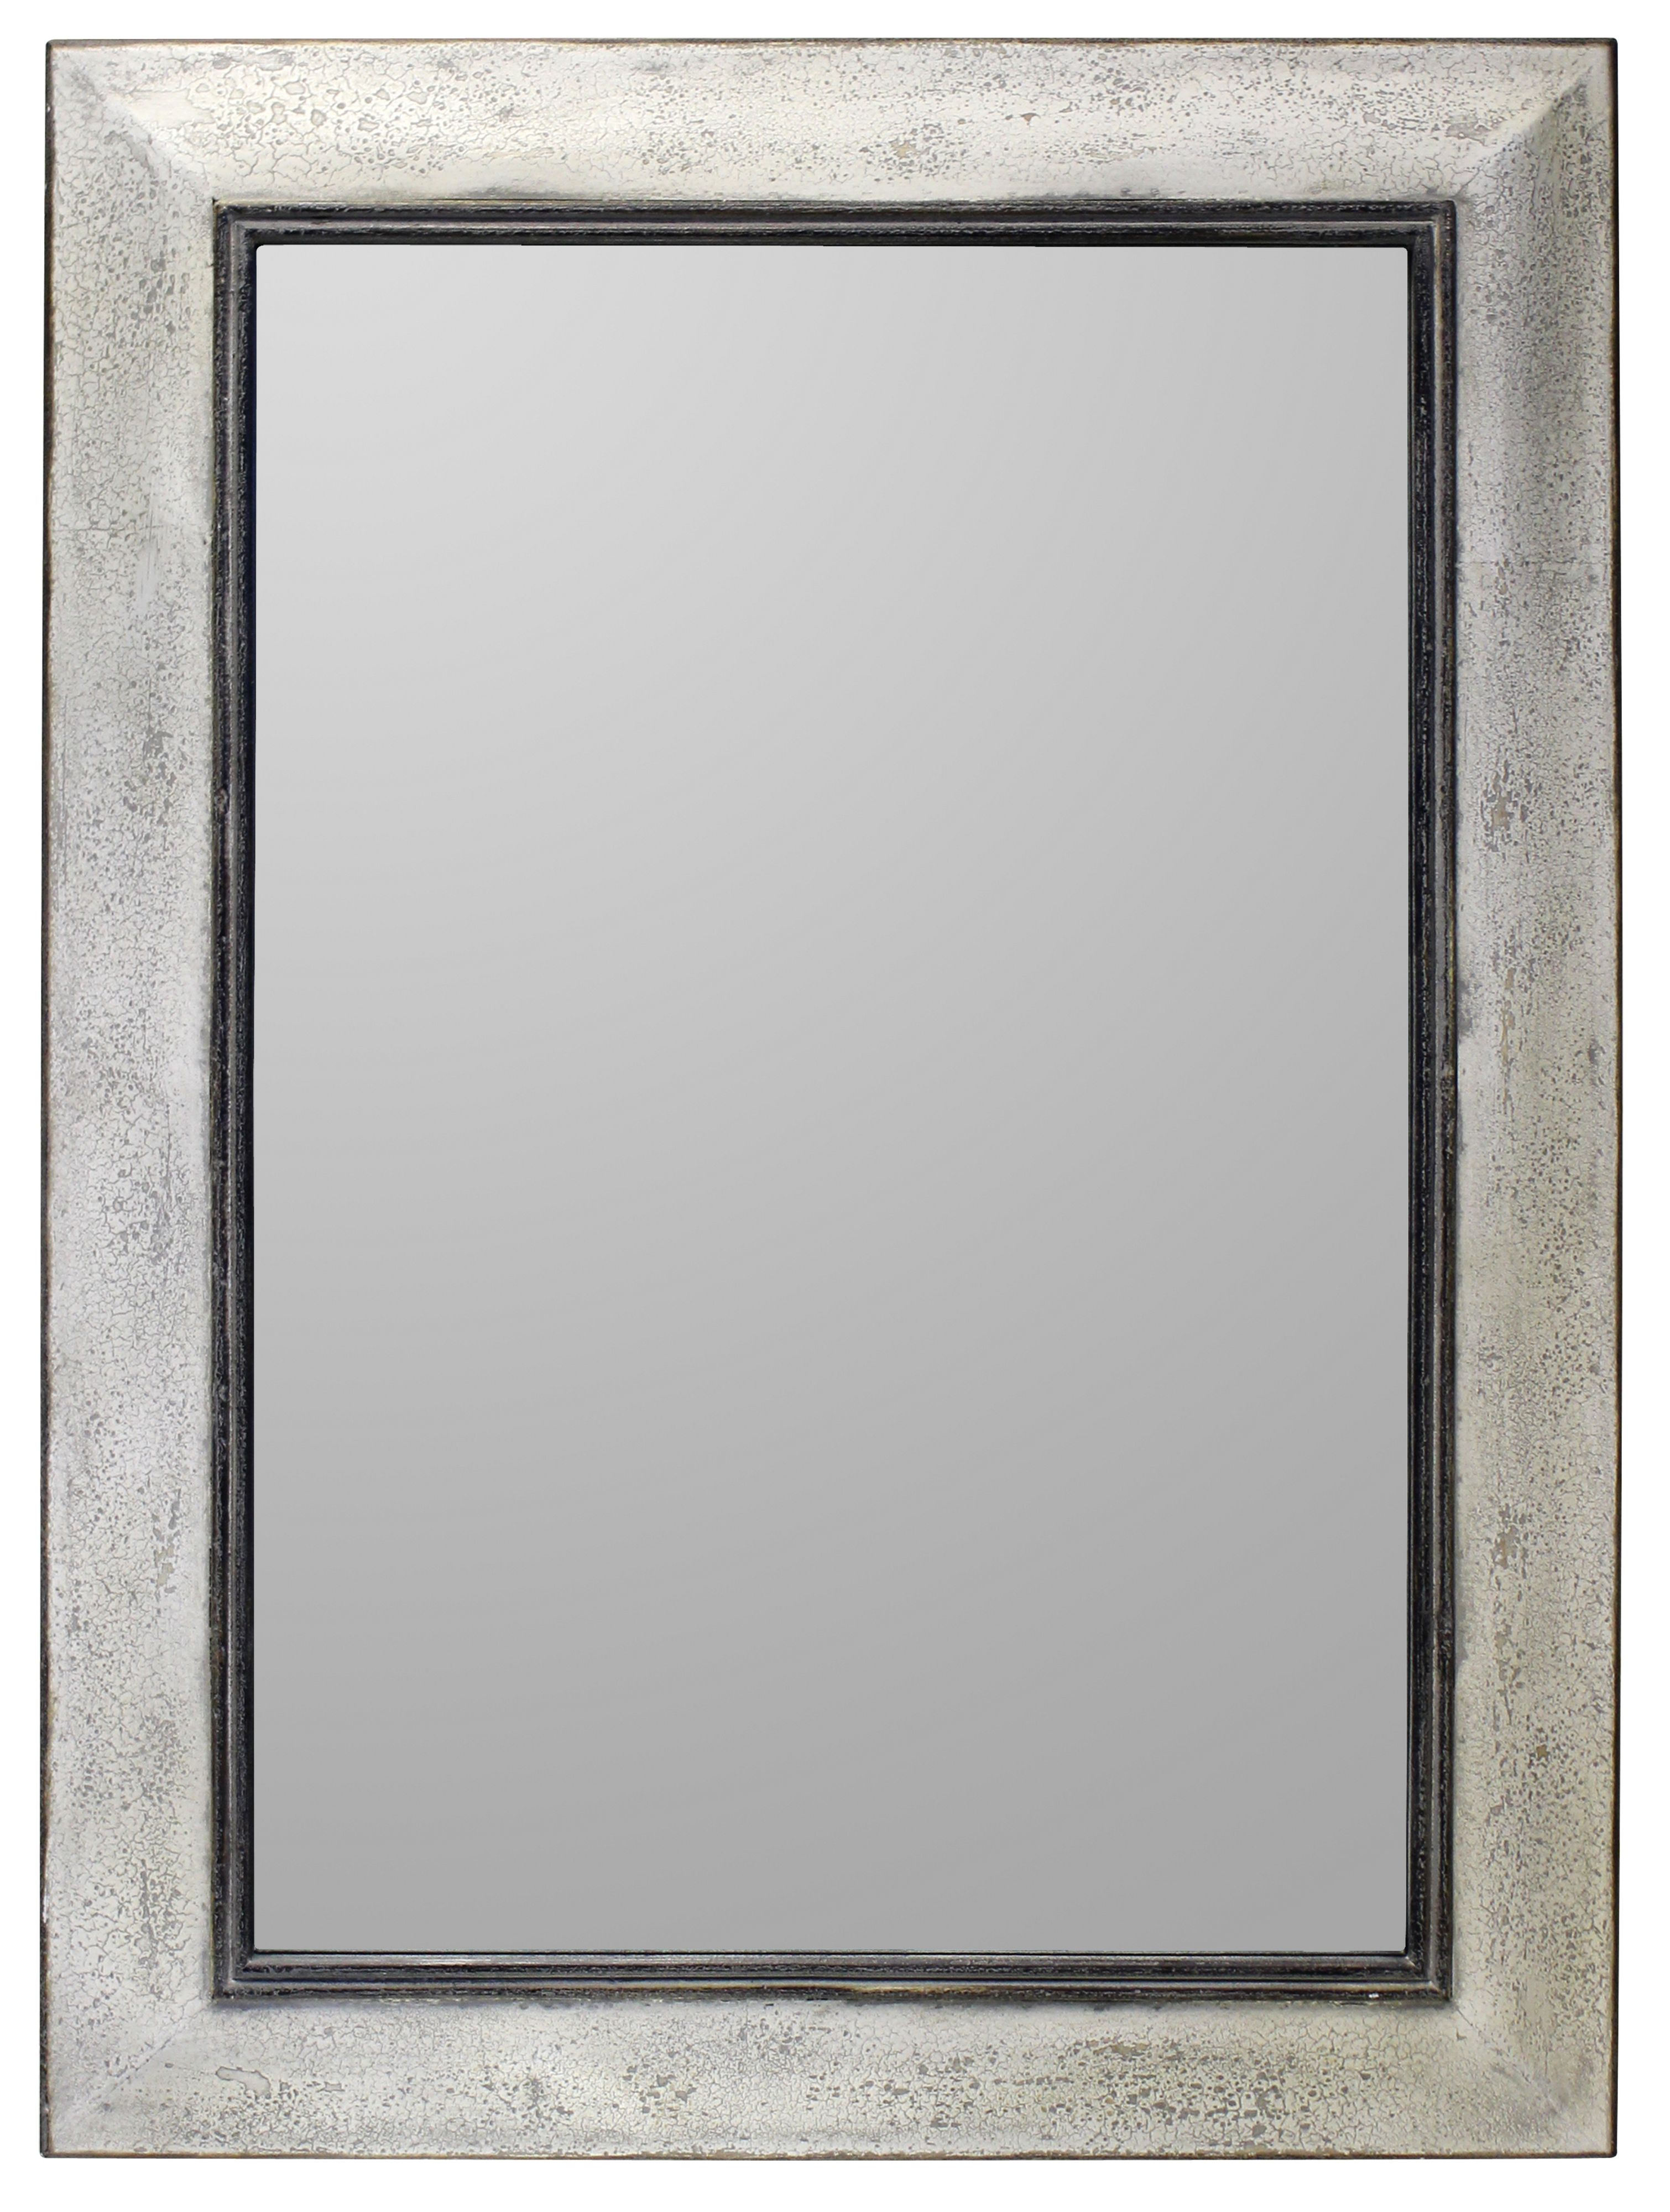 Ealham rustic wood mirror 41x31